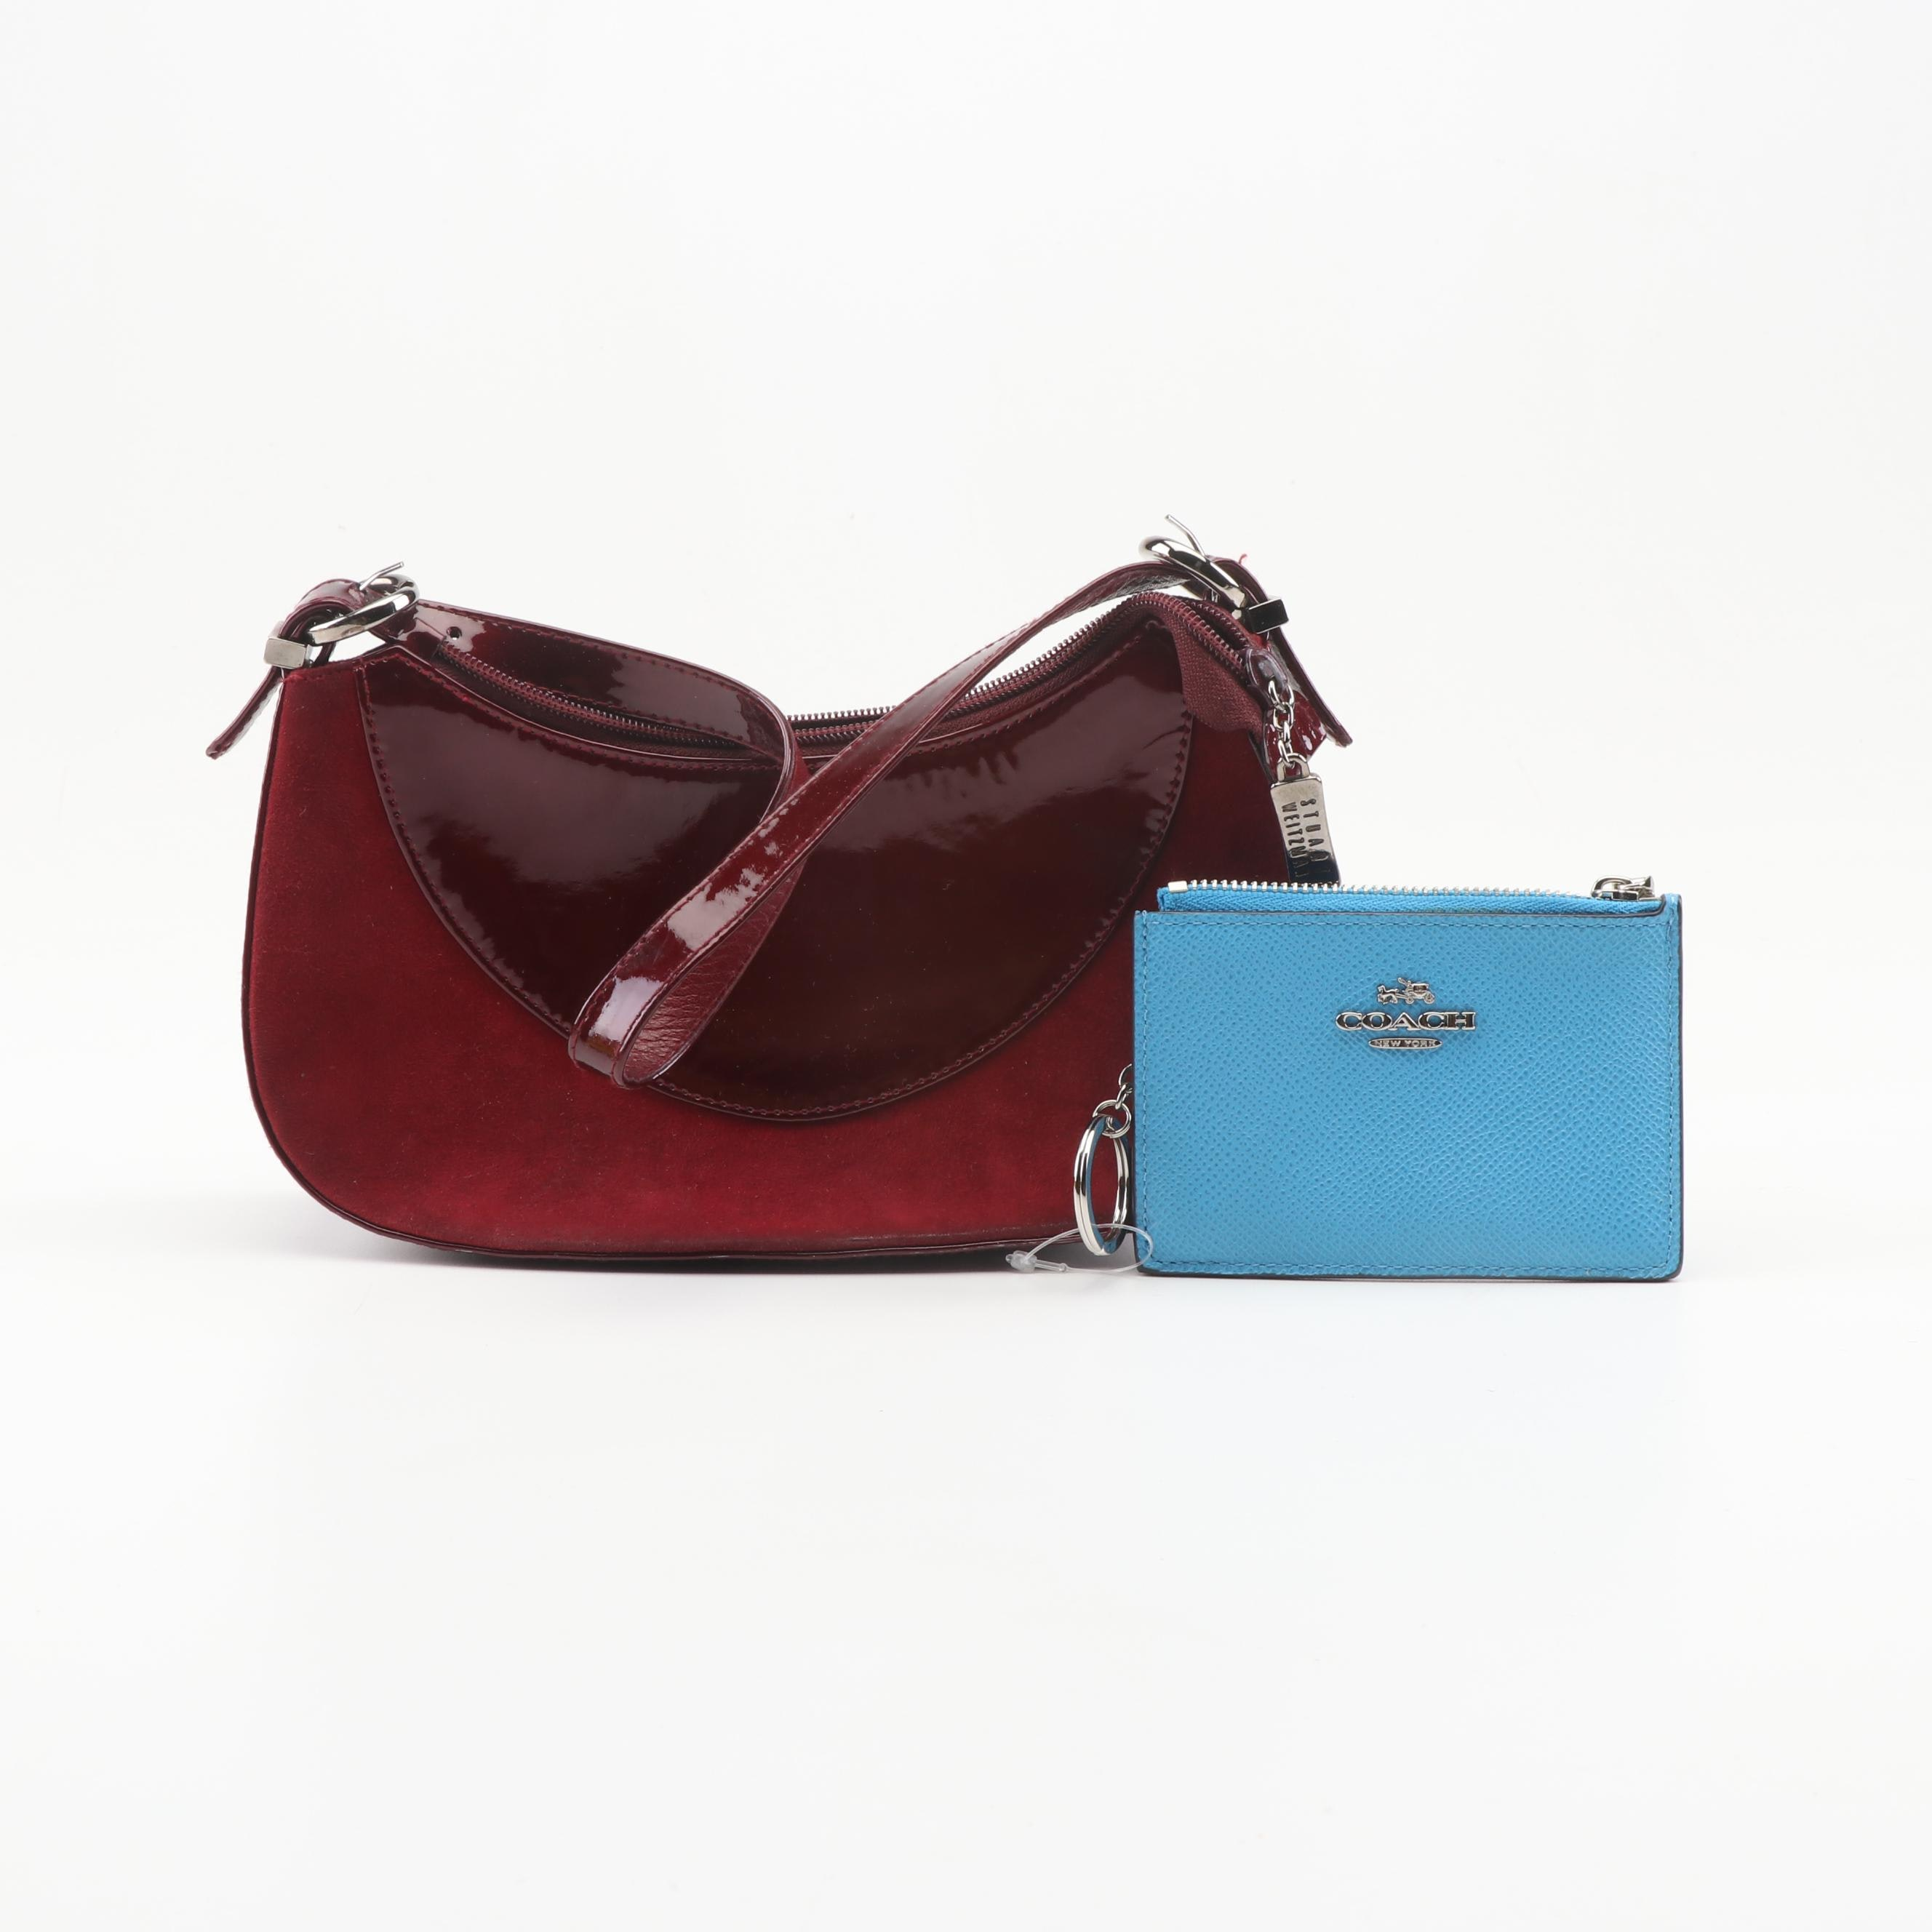 Stuart Weitzman Suede and Patent Leather Handbag and Coach Leather Wallet